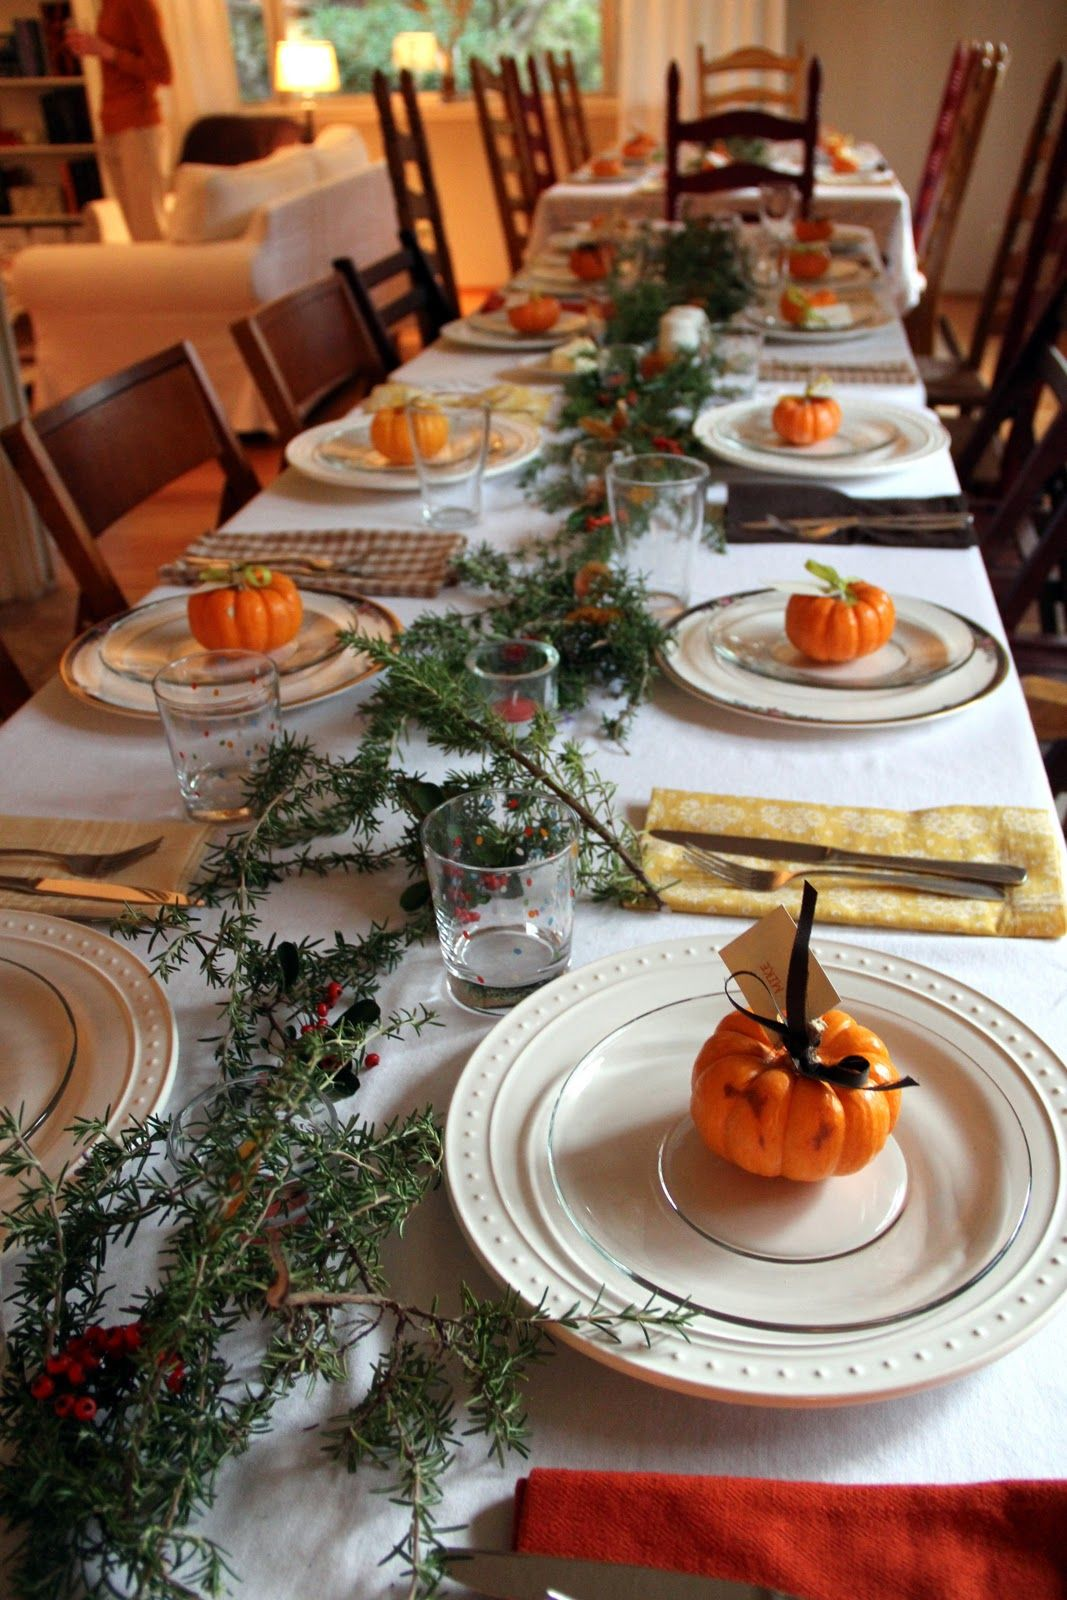 Thanksgiving day dinner table decorated thanksgiving - Thanksgiving dinner table decorations ...